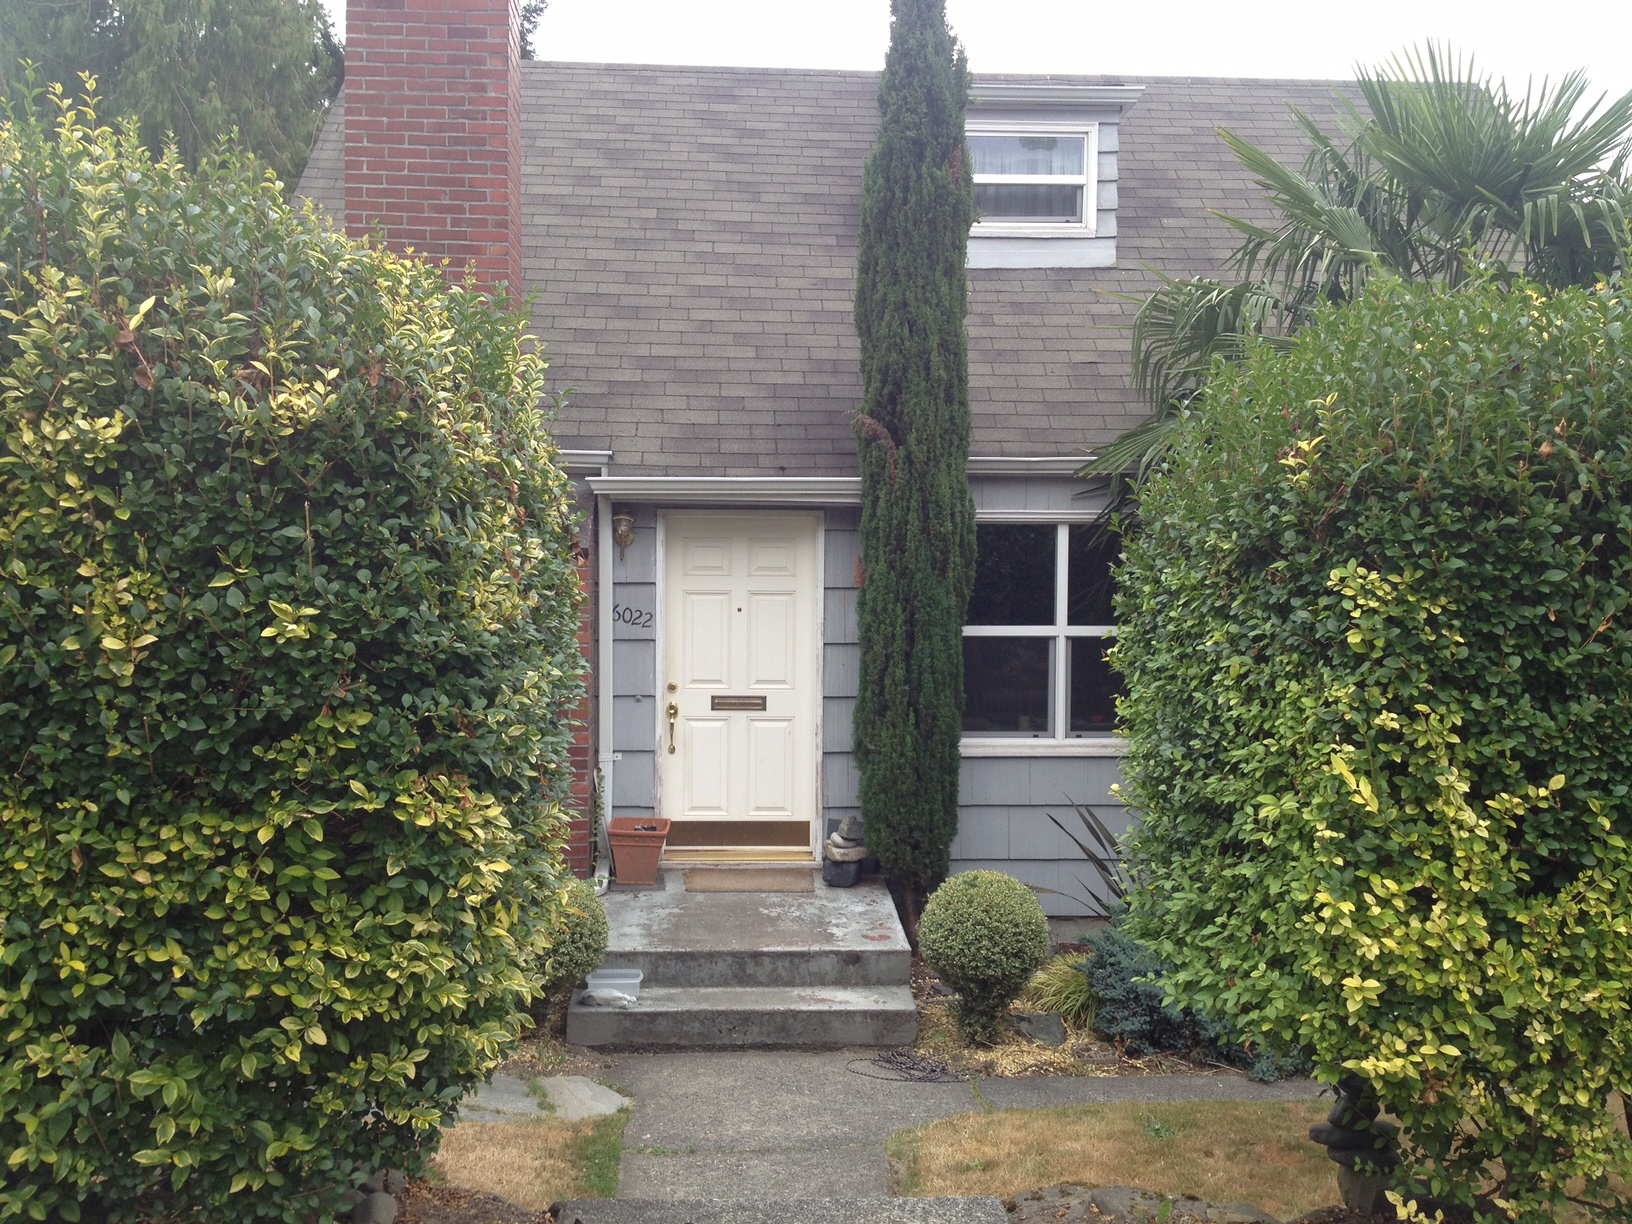 You could barely see this home behind all of the shrubs, but it was in the perfect neighborhood.